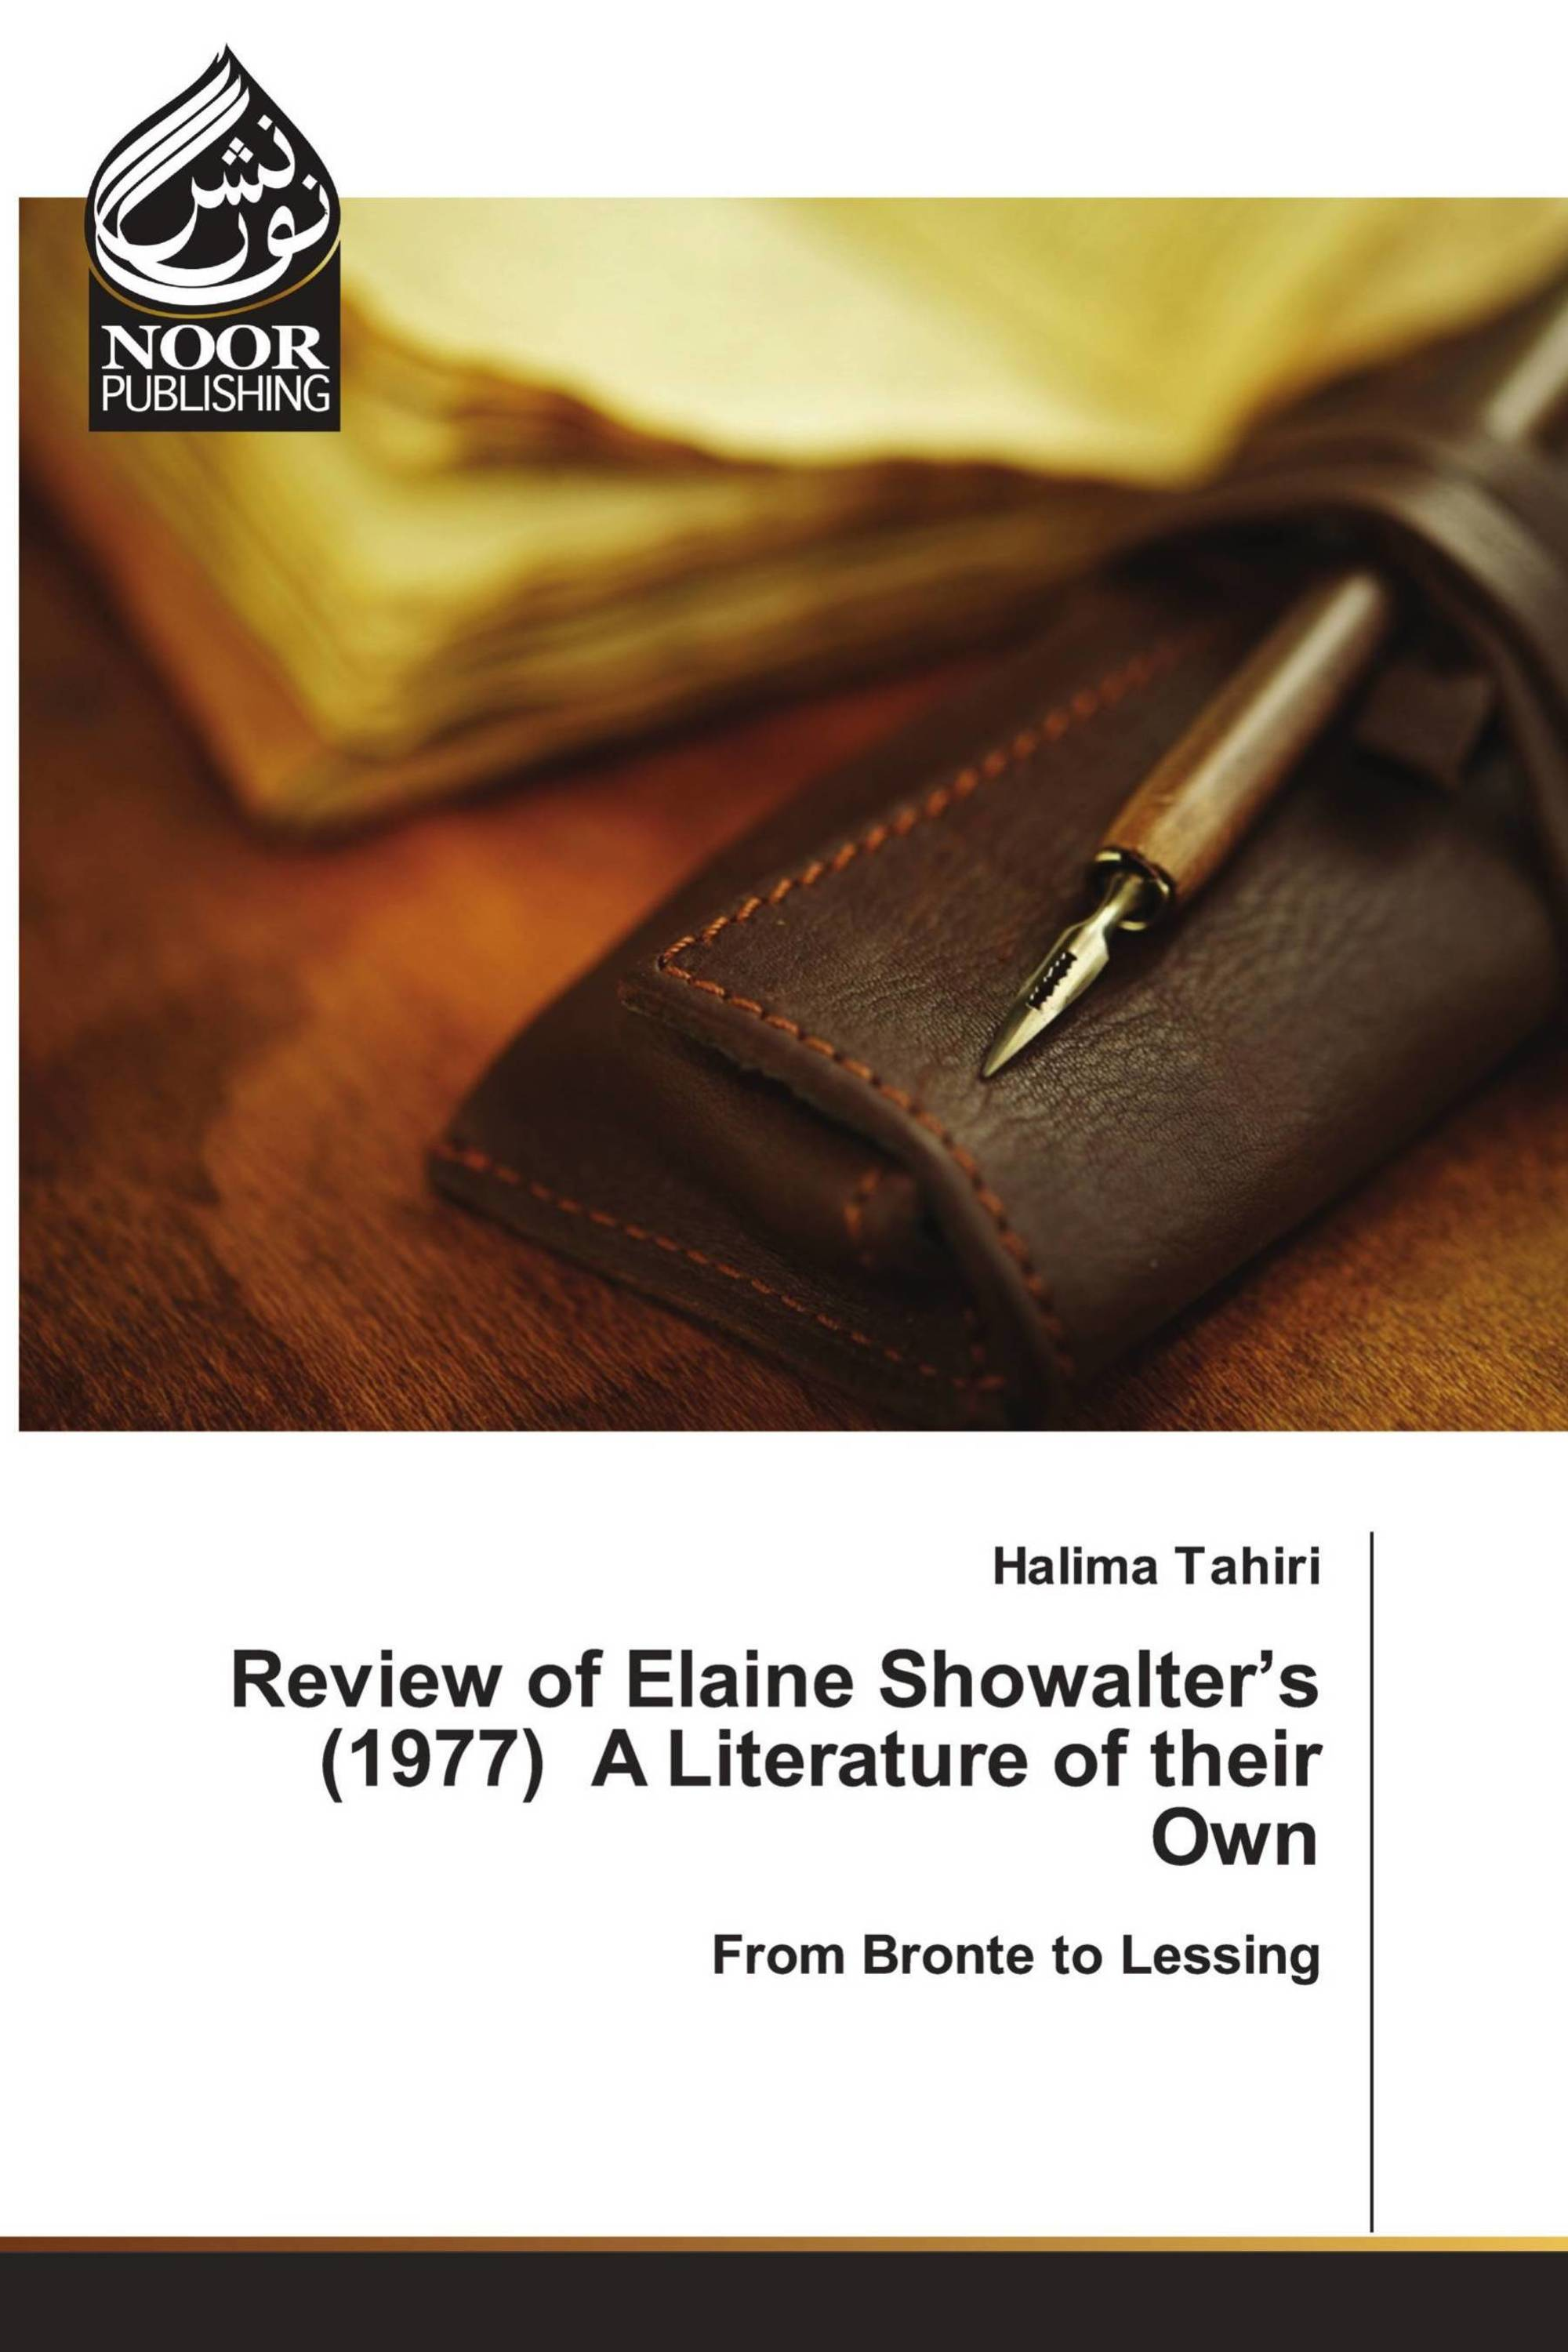 Review of Elaine Showalter's (1977) A Literature of their Own